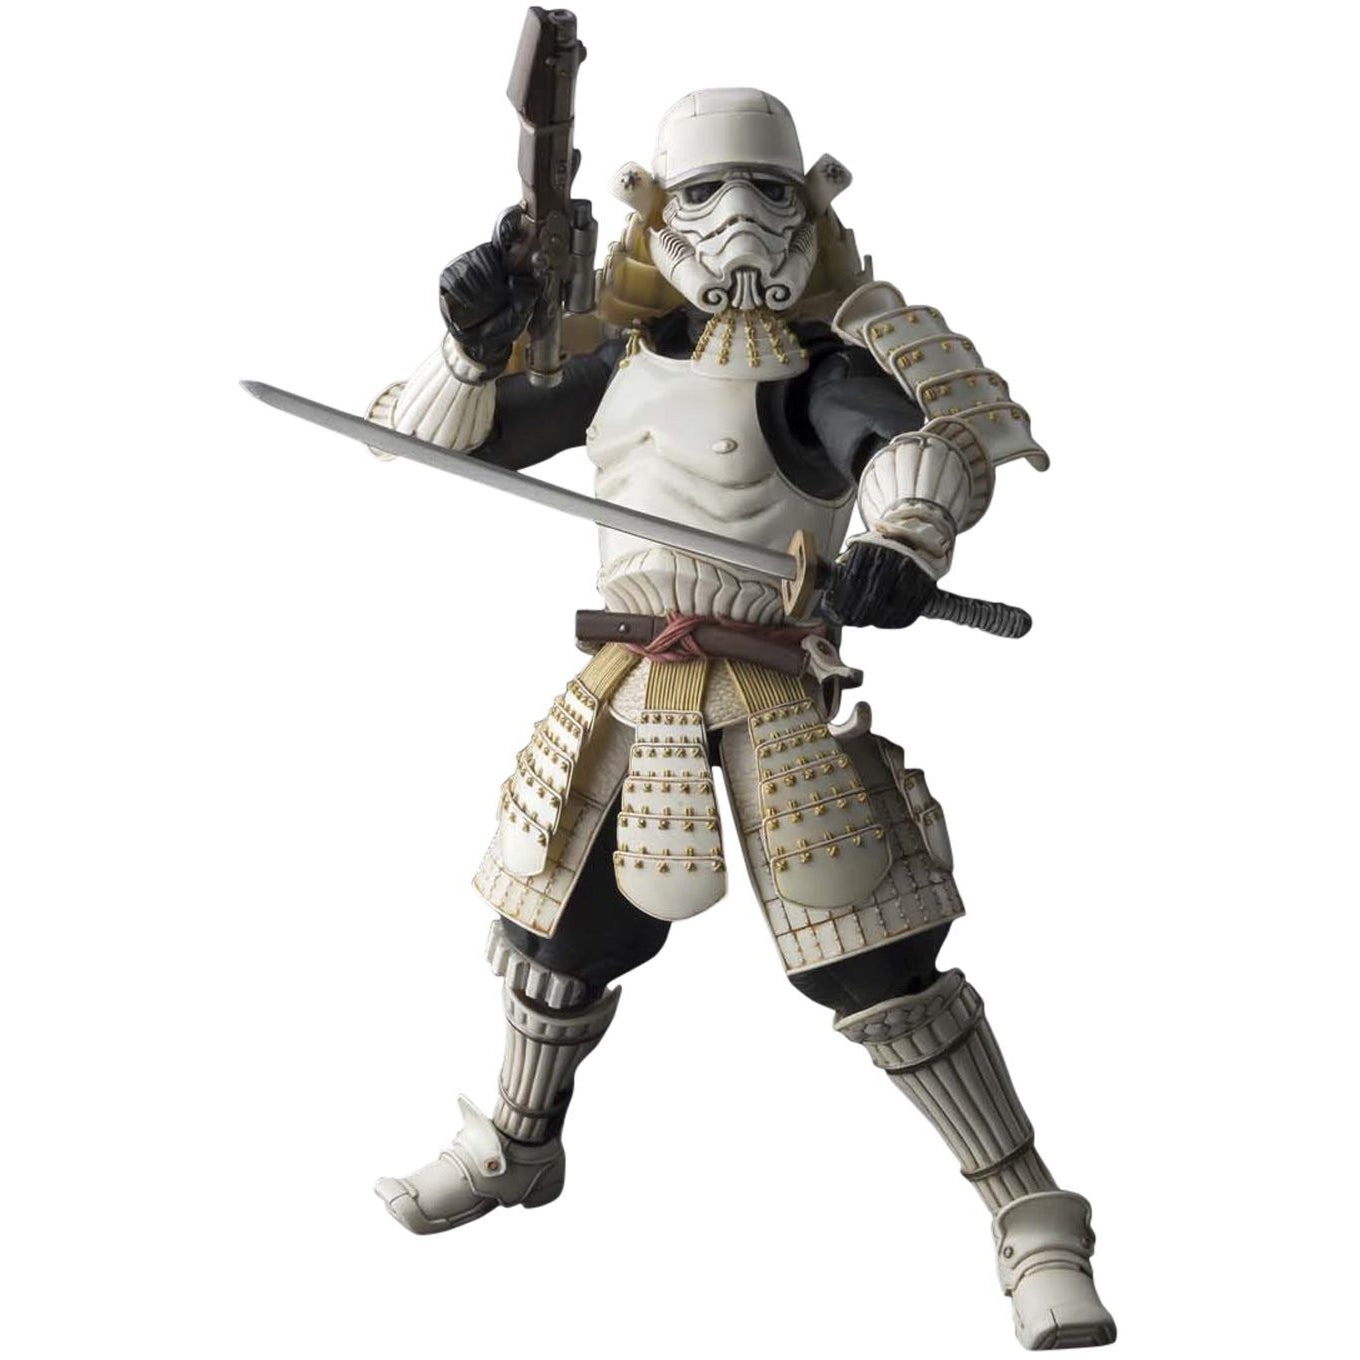 Bandai Tamashii Nations Meishou Movie Realization Teppou Ashigaru Sandtrooper Action Figure - ToyThug